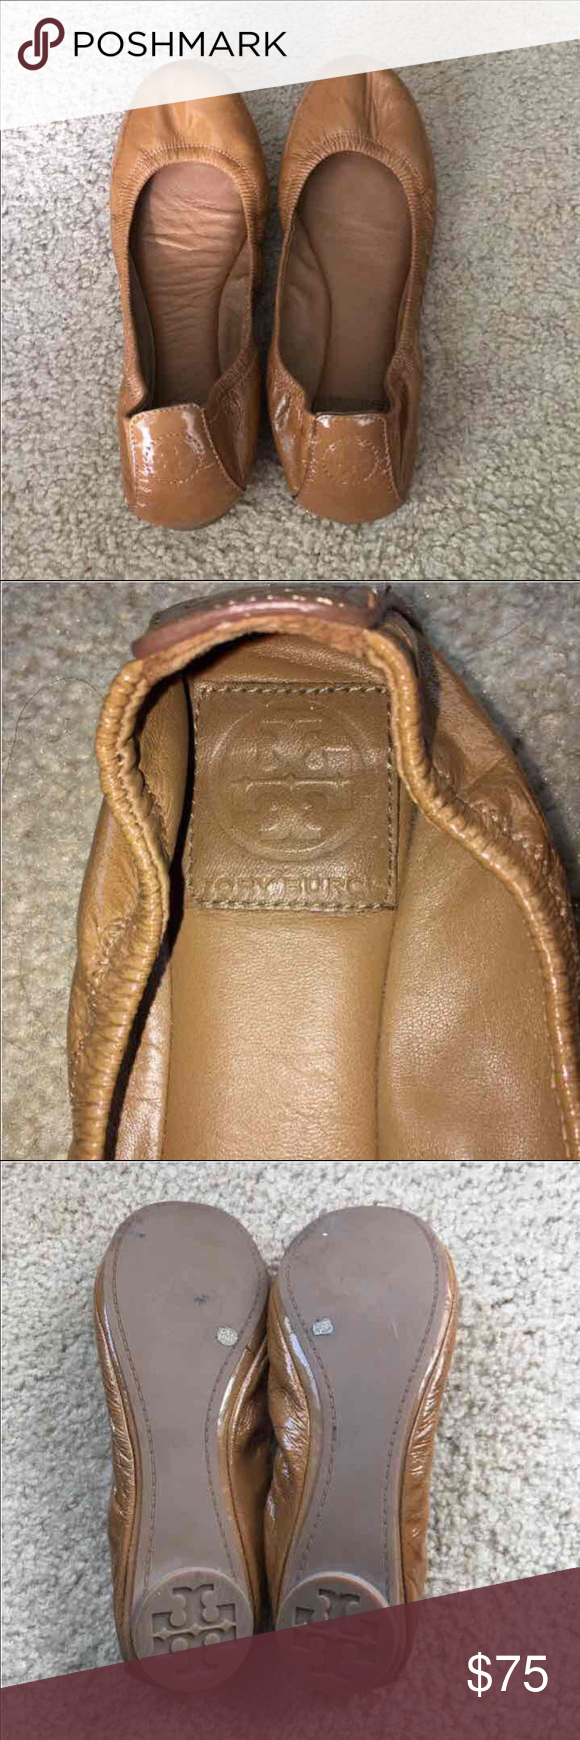 Tory burch flats In good condition, no major wear. Authentic. Tory burch sign on the back. Women's size 8. Light brown gloss. Tory Burch Shoes Flats & Loafers